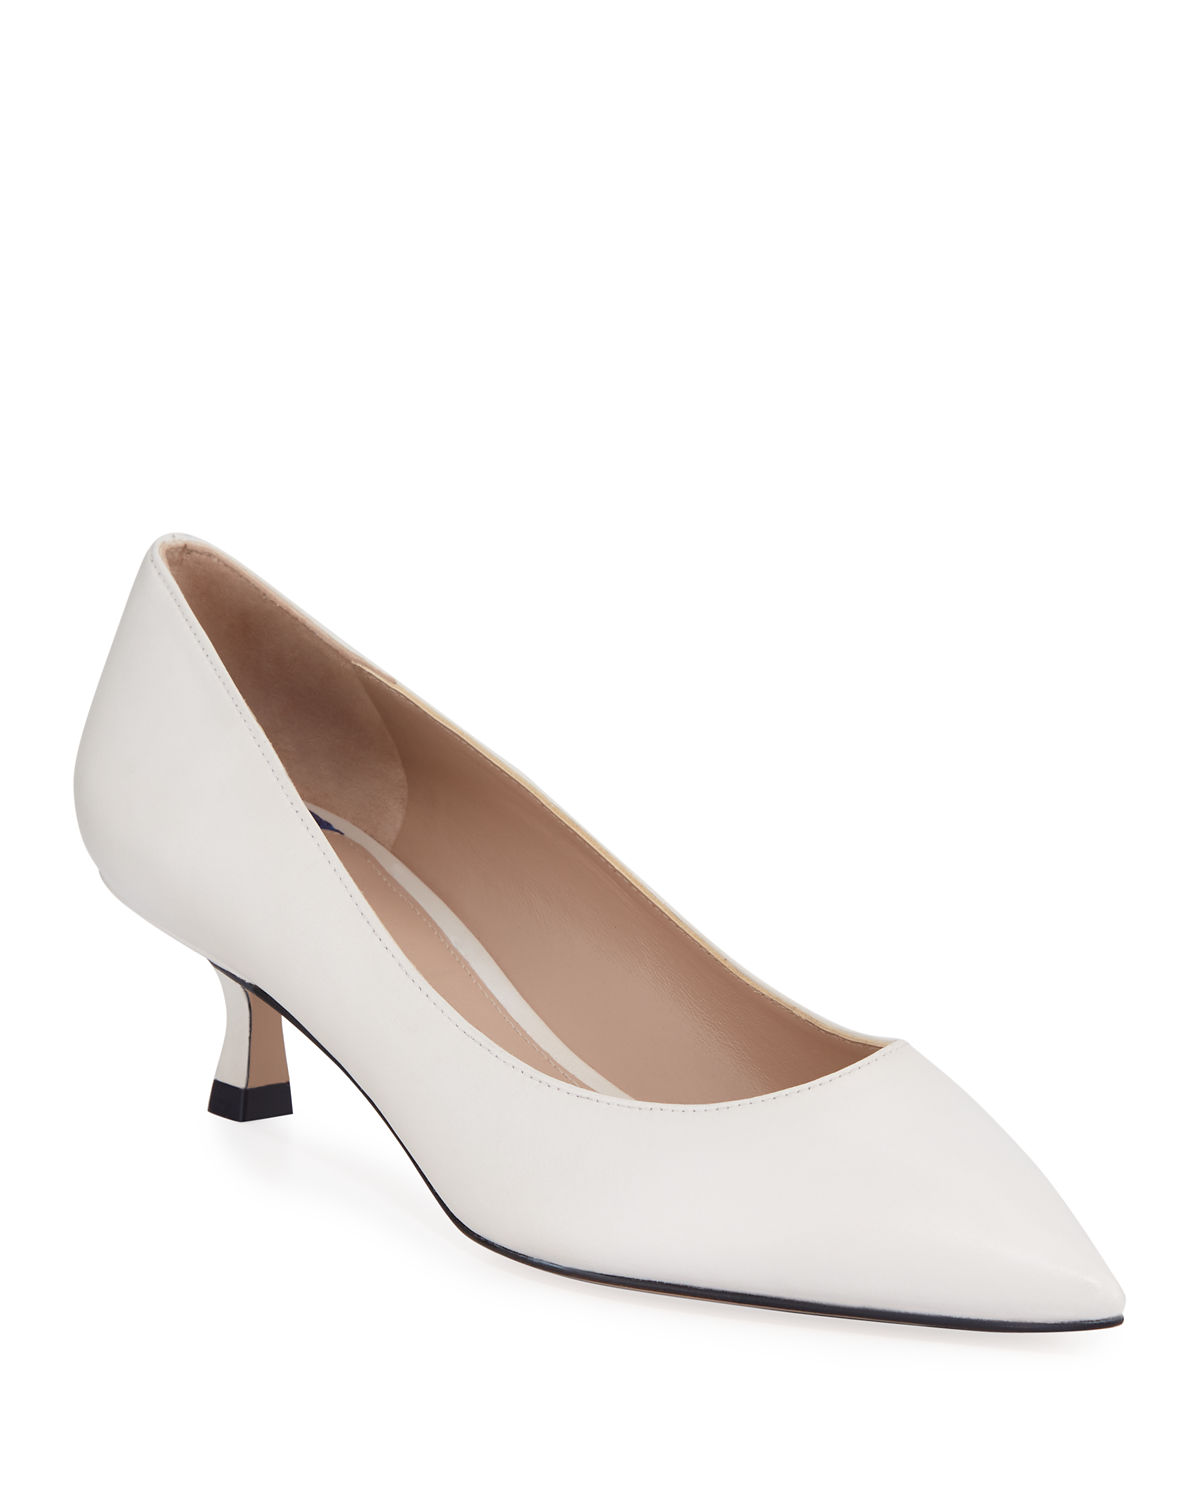 e3e1fccc969 Stuart Weitzman Tippi Low-Heel Leather Pointed-Toe Pumps